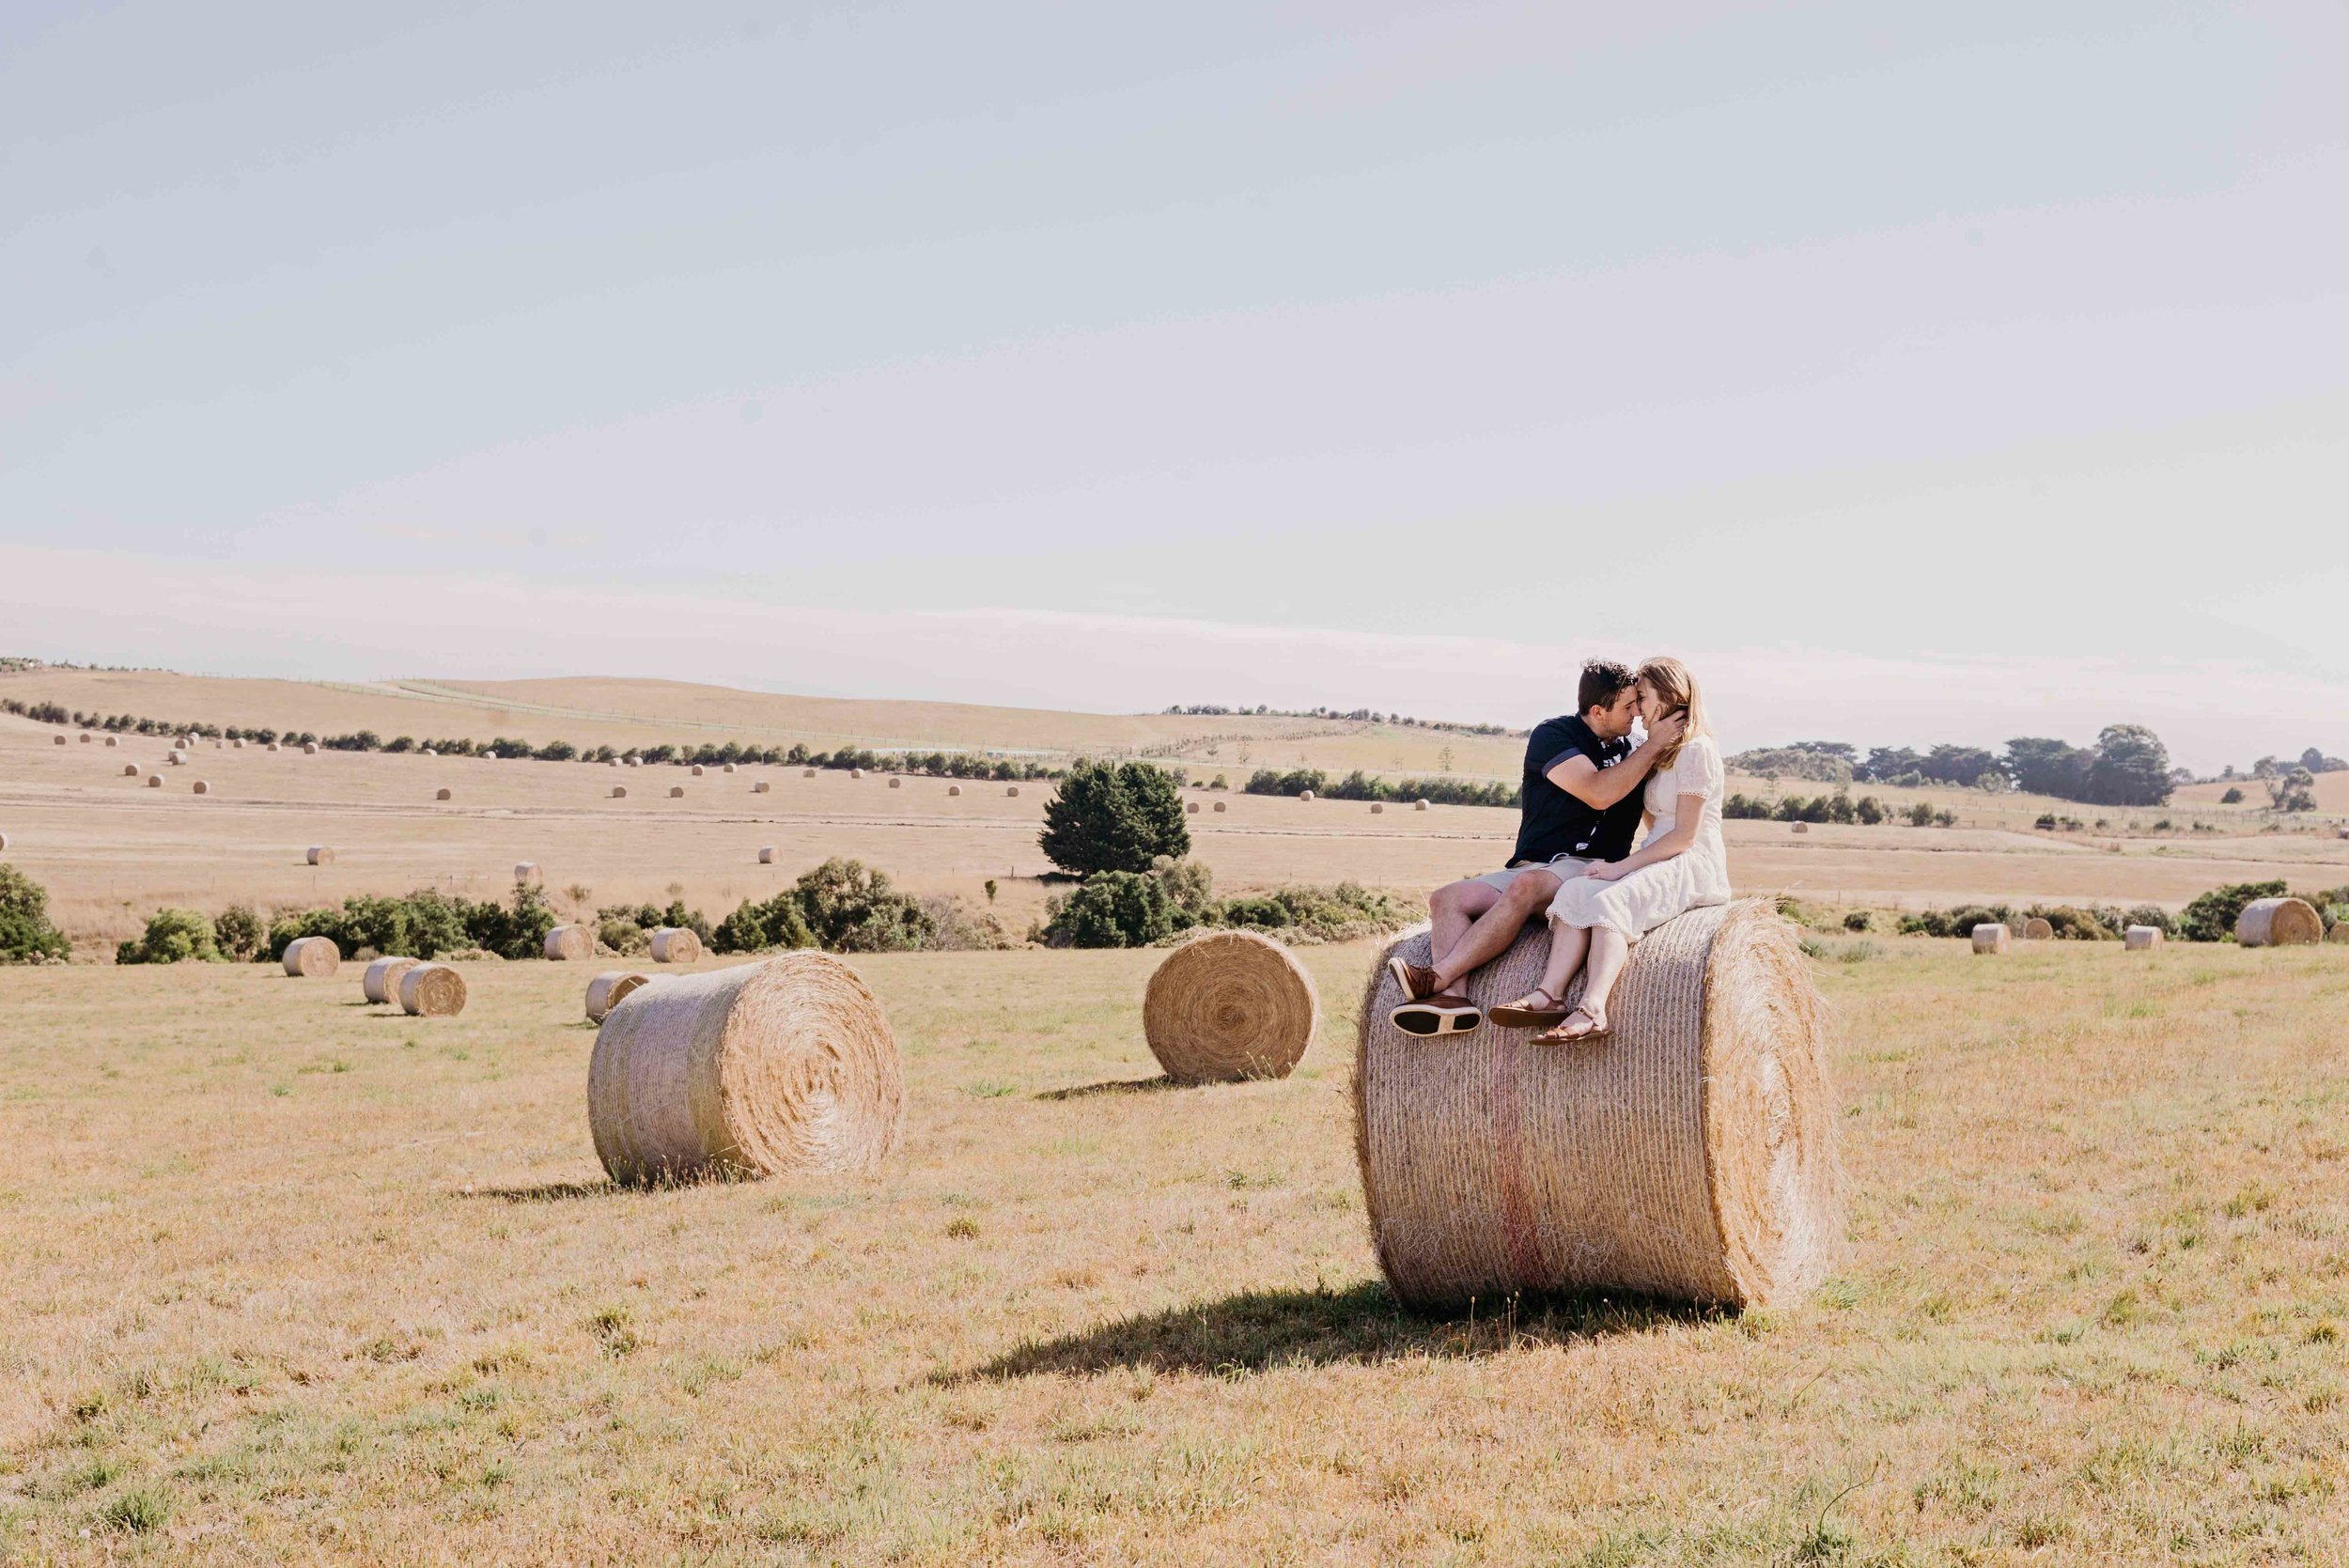 marissa-jade-photography-mornington-peninsula-wedding-photographer-natural-engagement-photography-red-hill-79.jpg